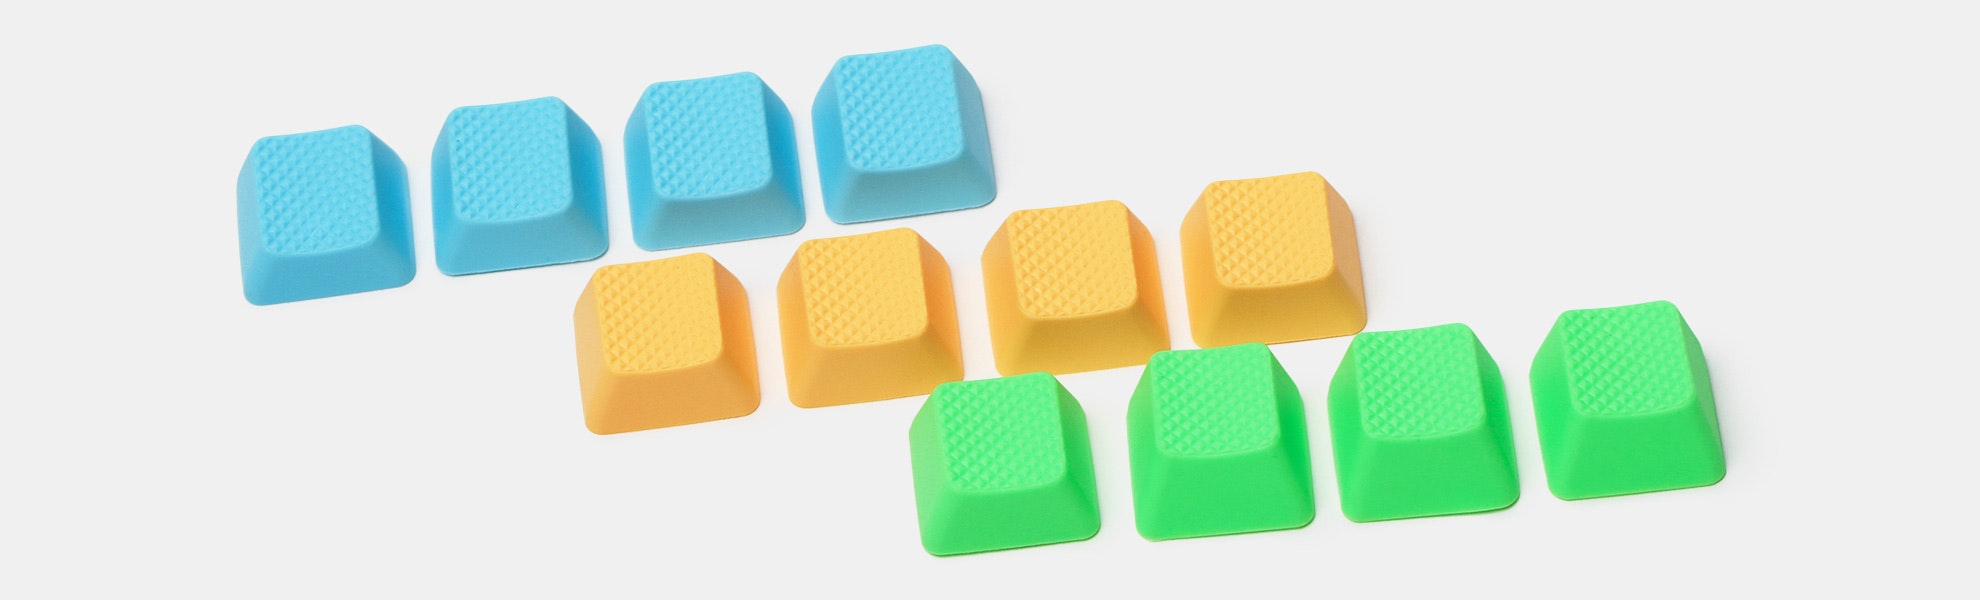 Tai-Hao Blank Rubber Gaming Keycaps (2-Pack)